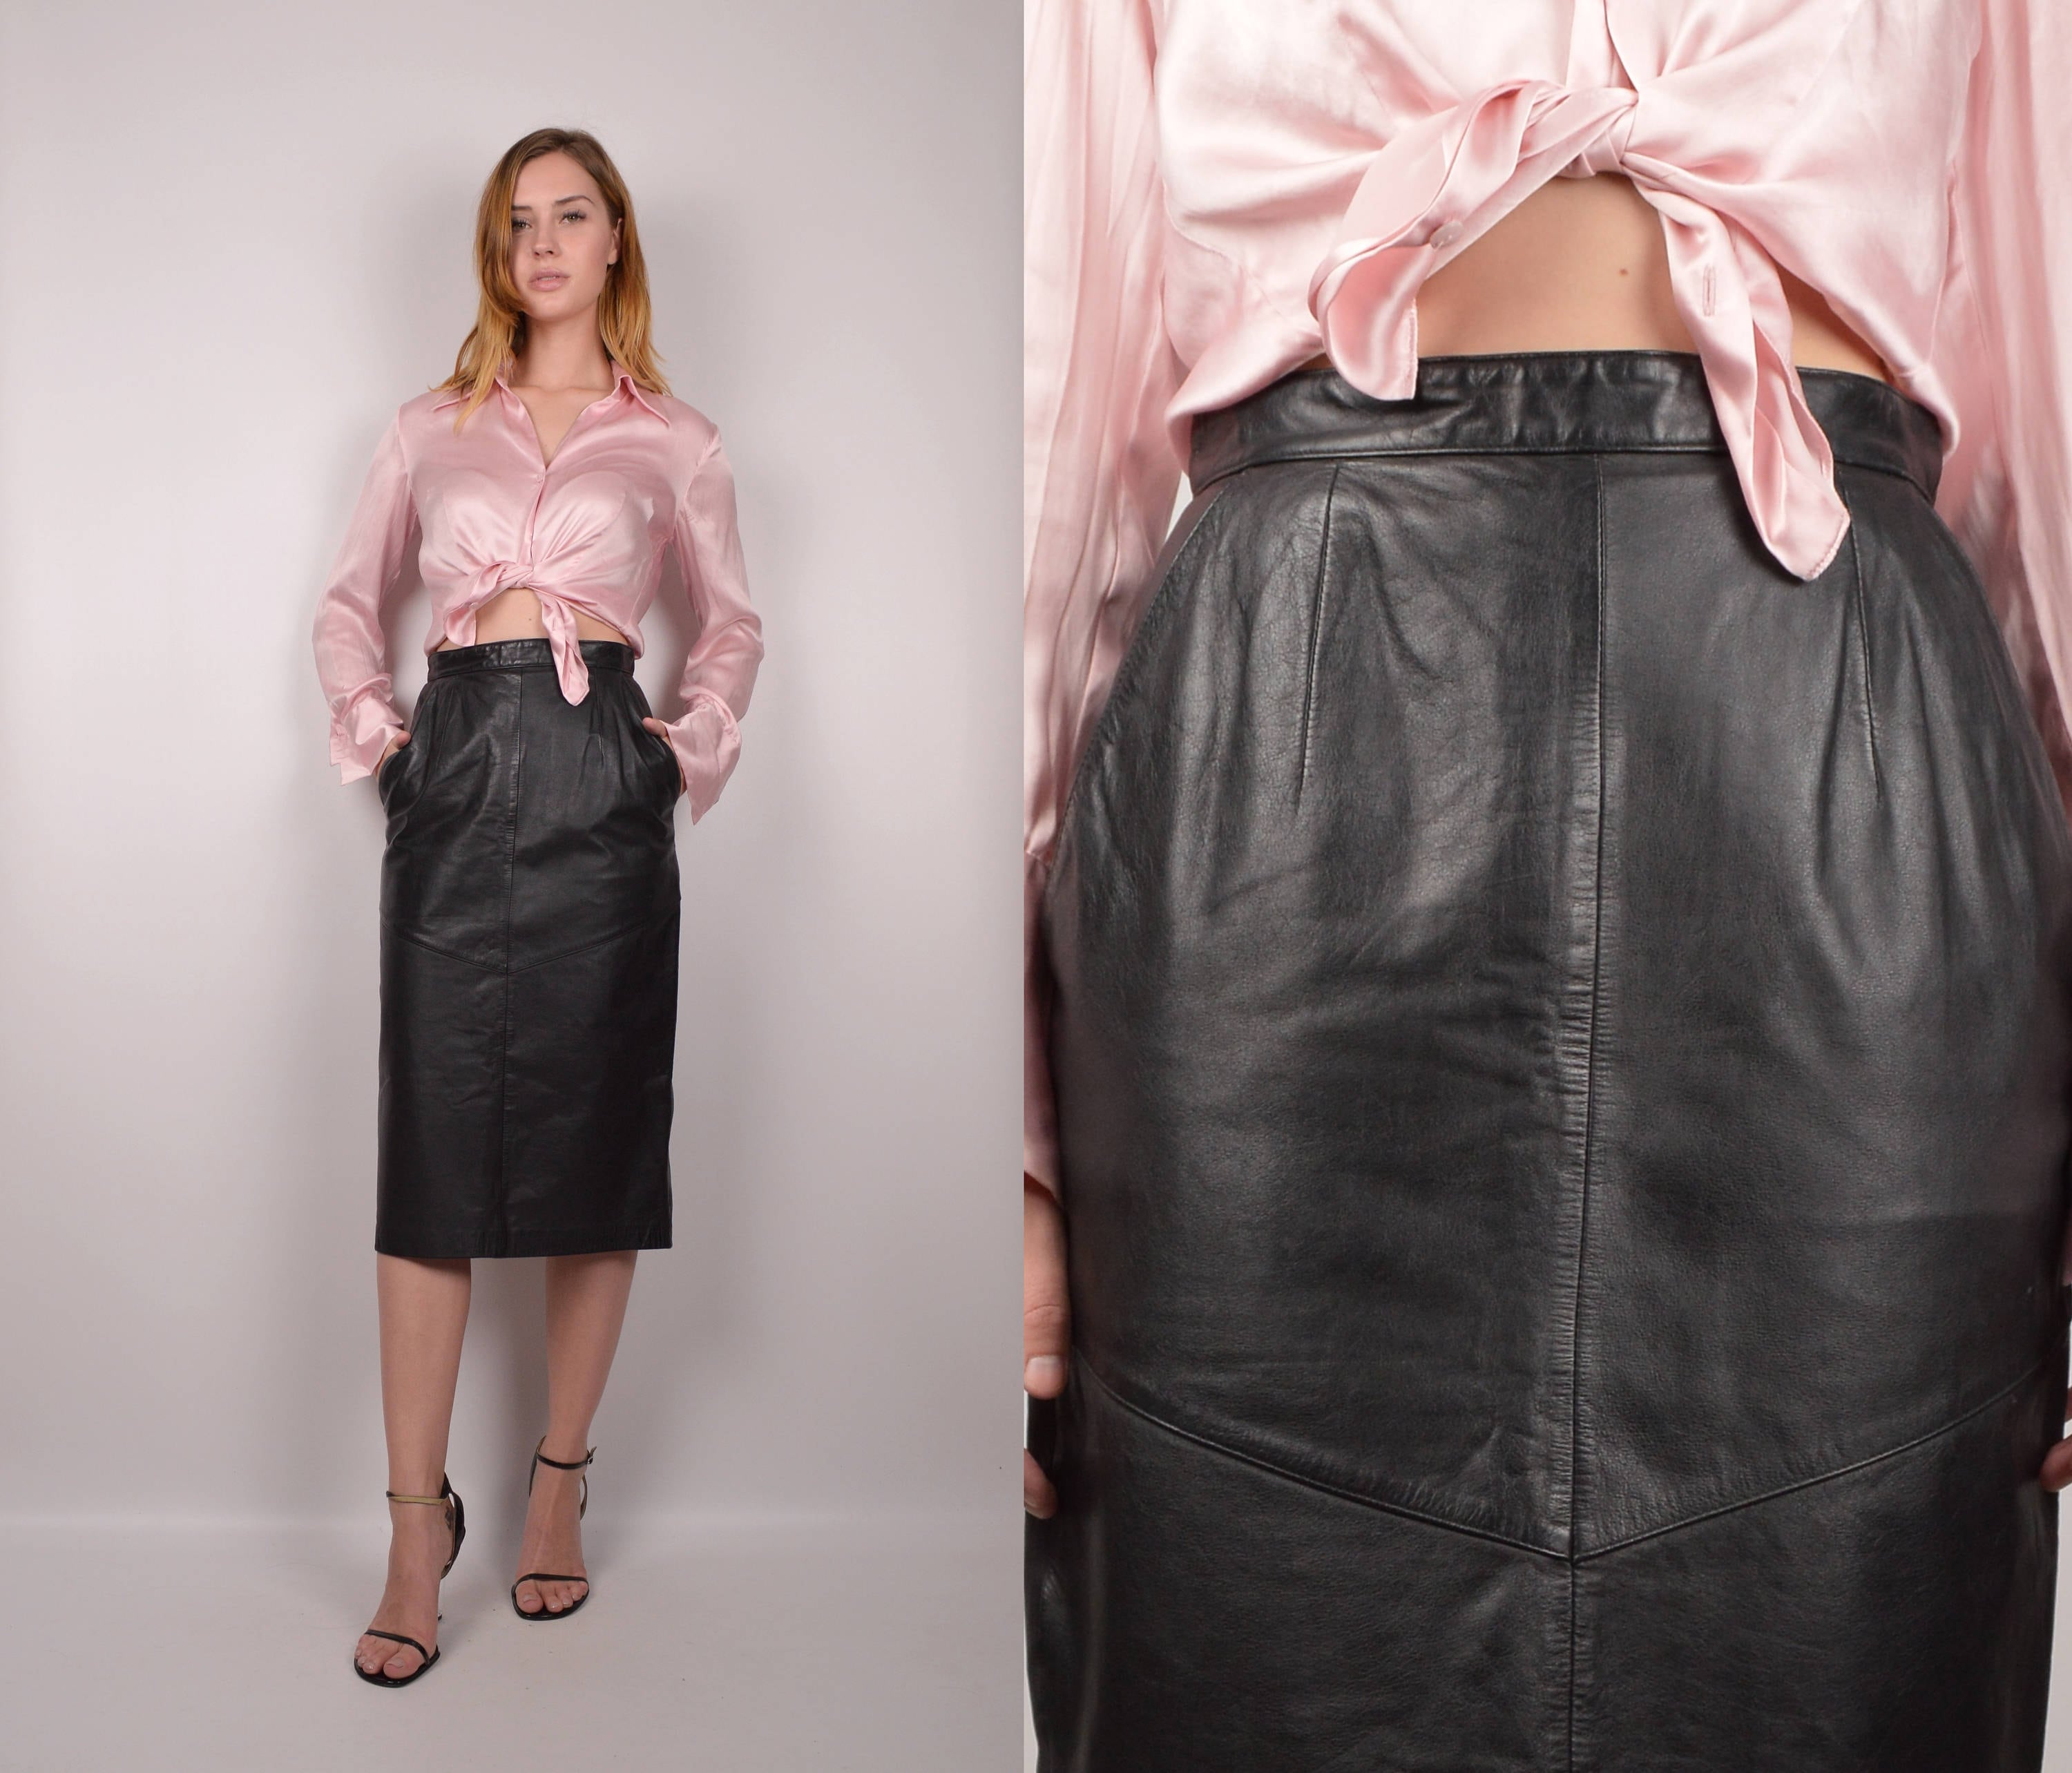 bb59a71b1d76 80's Leather High Waist Pencil Skirt / minimalist vintage